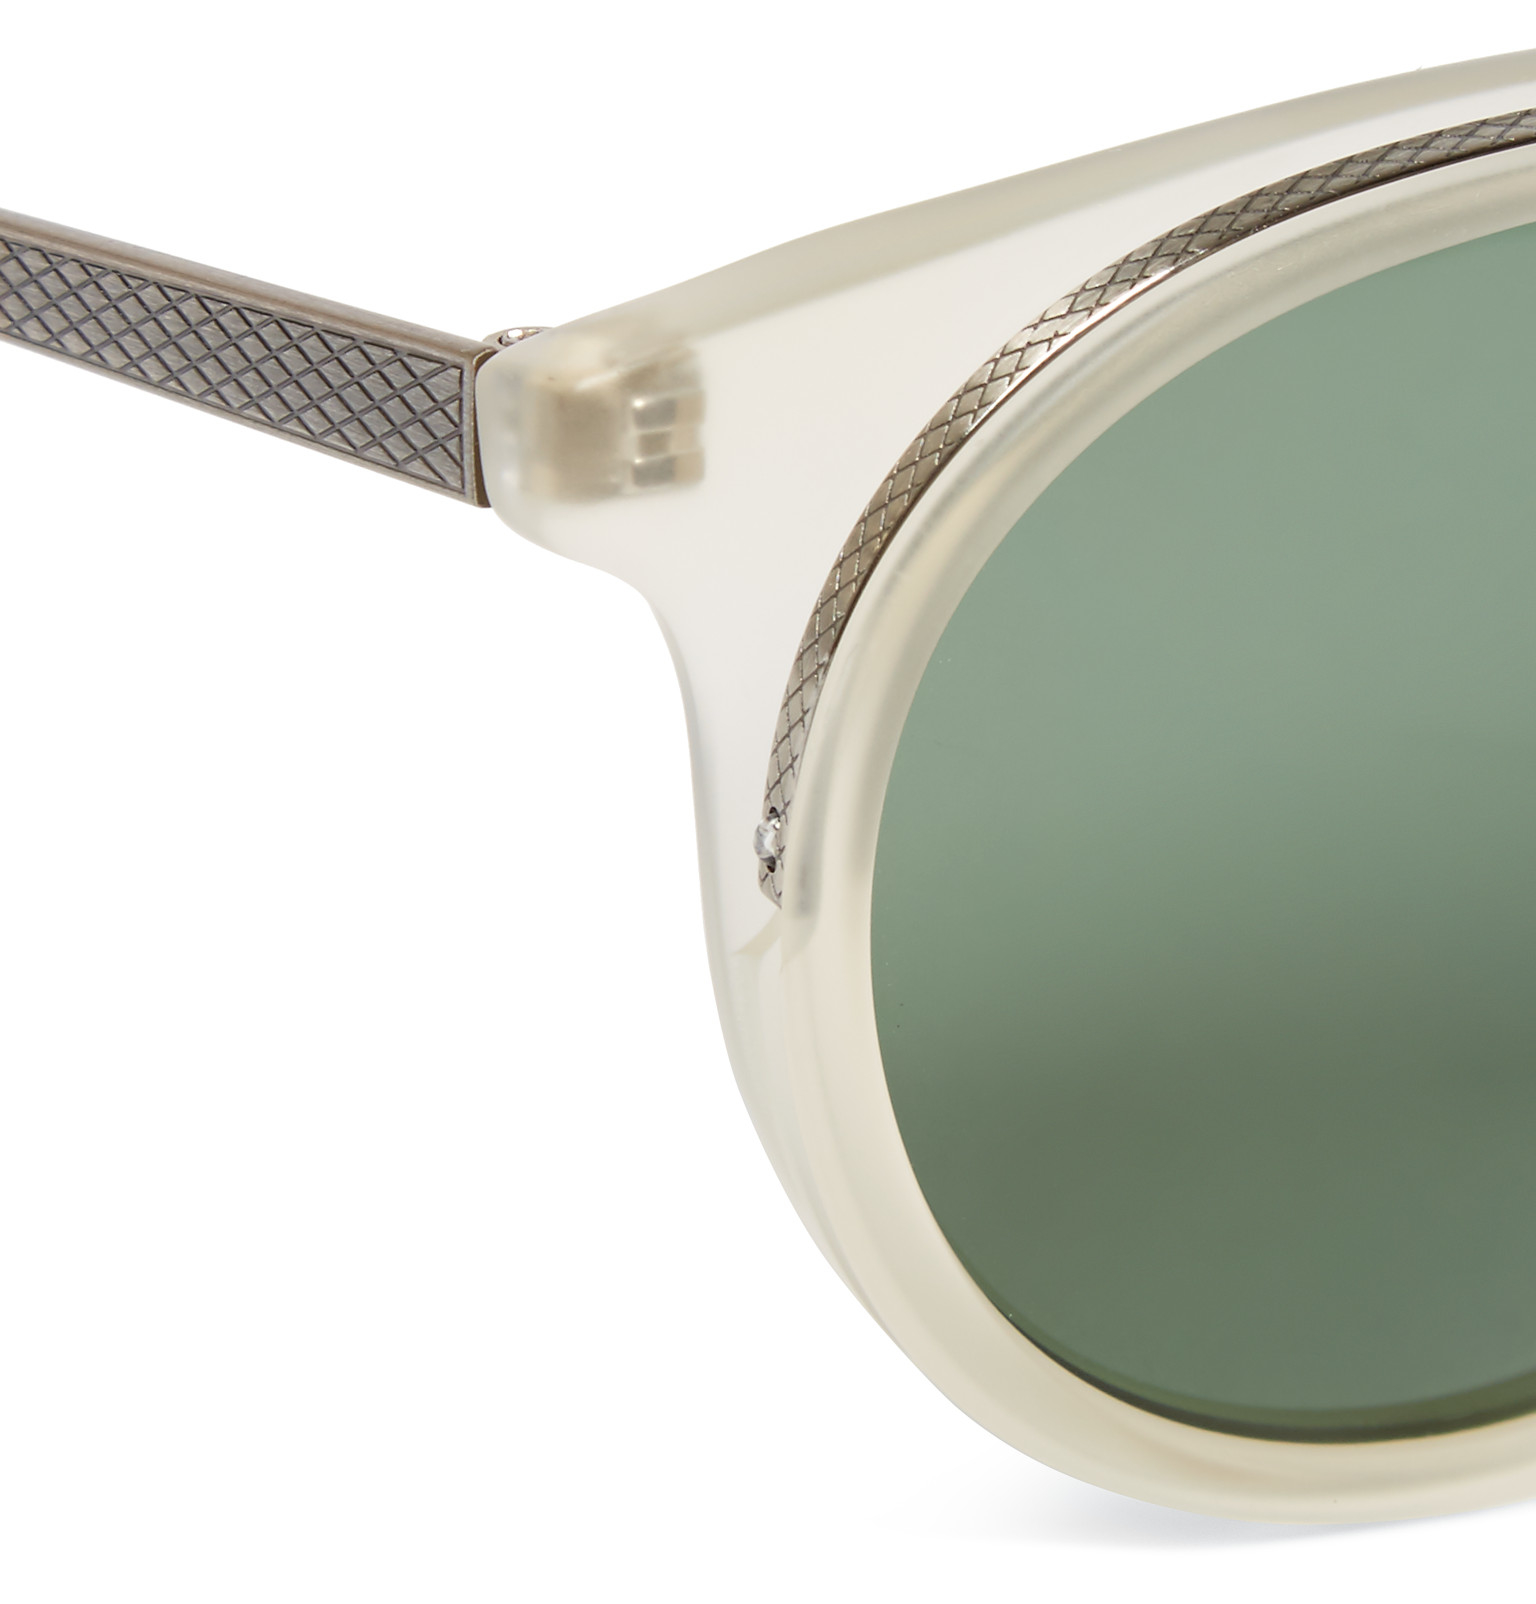 Barton Perreira Meyer Round-frame Acetate Polarised Sunglasses in Silver (Metallic) for Men